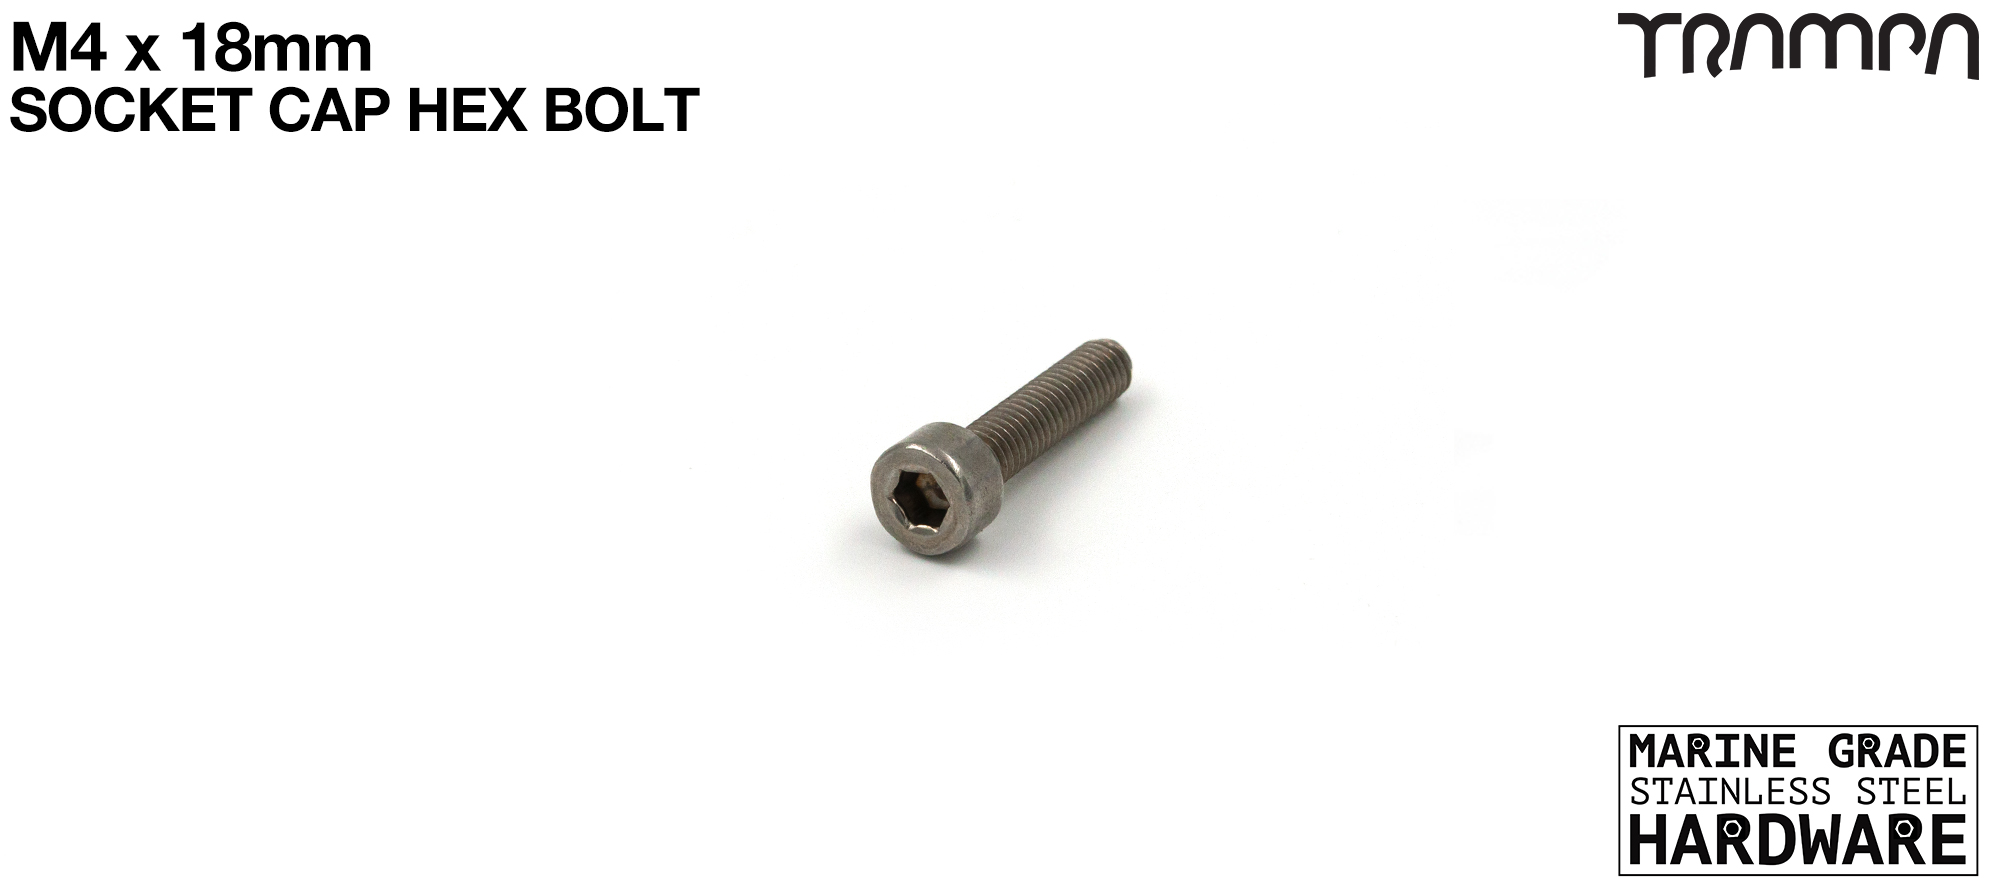 M4 x 18mm Socket Capped Head Bolt ISO 4762 Marine Grade Stainless Steel #25